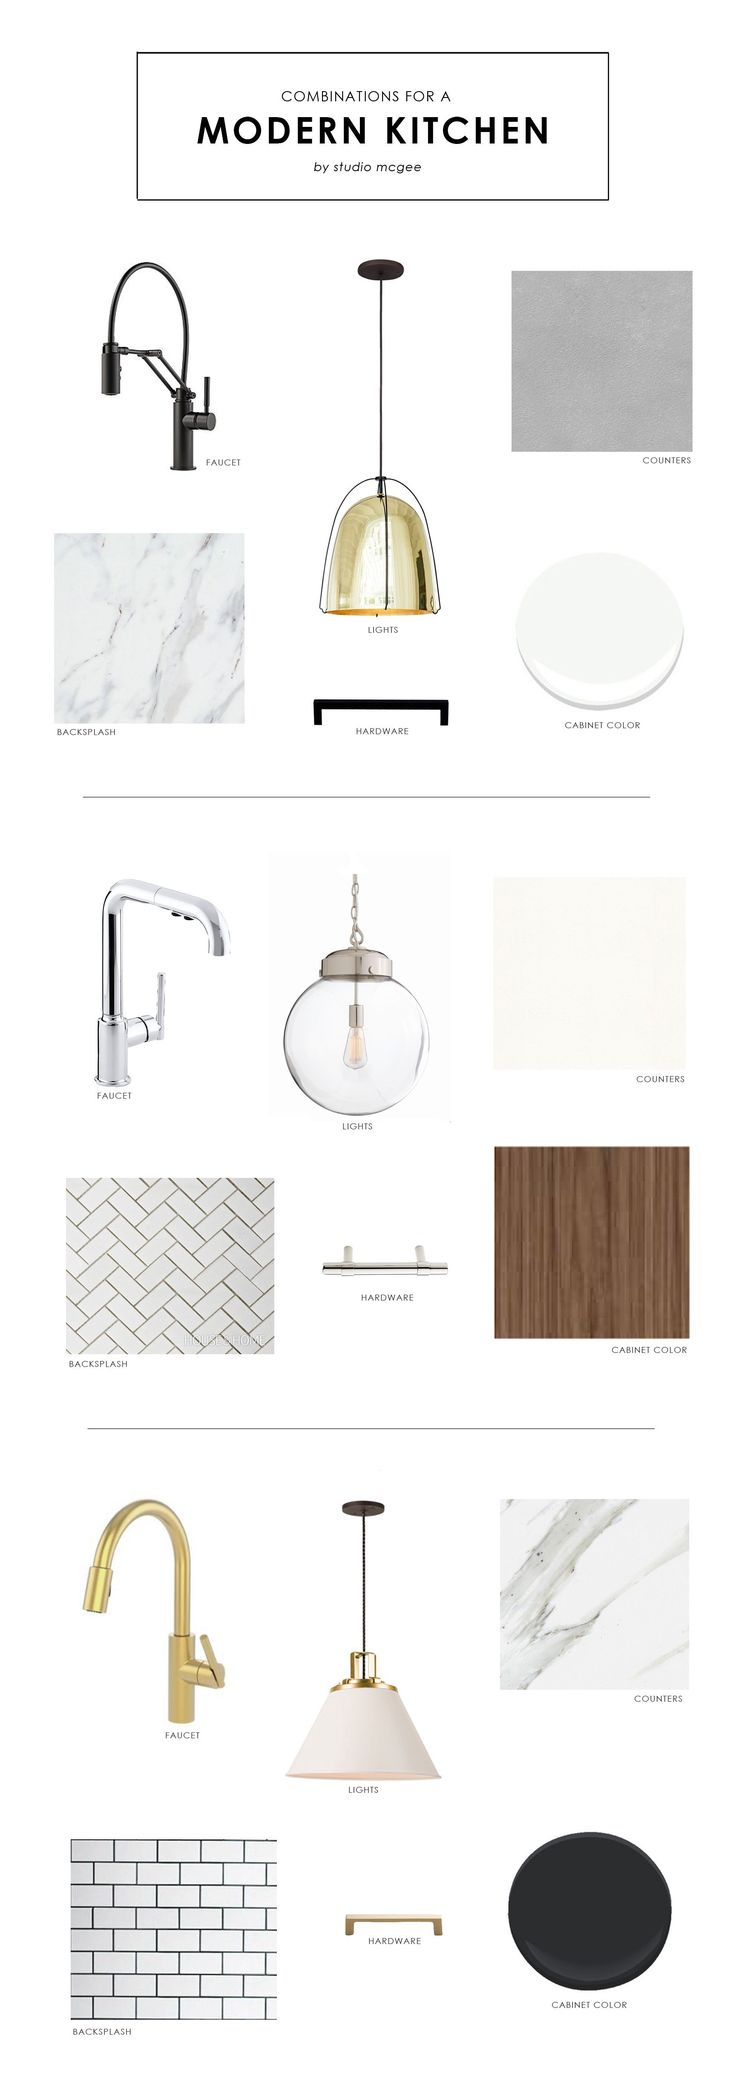 Studio McGee   Combinations for a Modern Kitchen